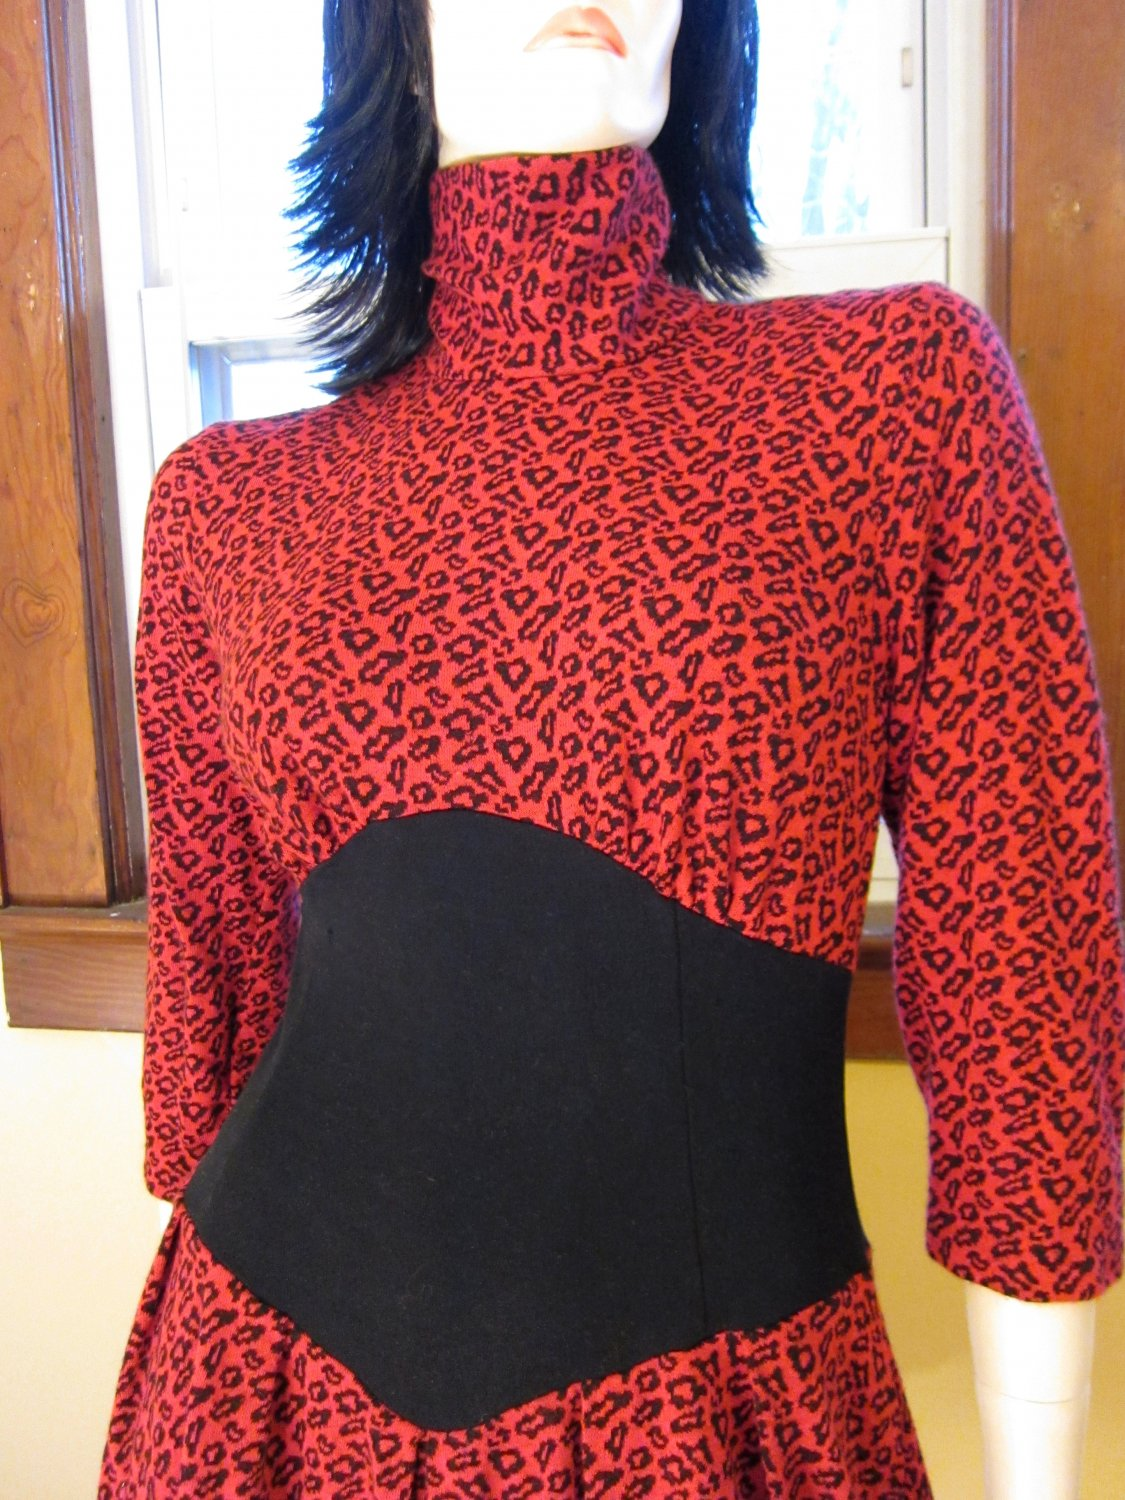 NYC Hipster Vintage 80s Flashy Red Leopard Print Minidress Punk New Wave Size 7/8